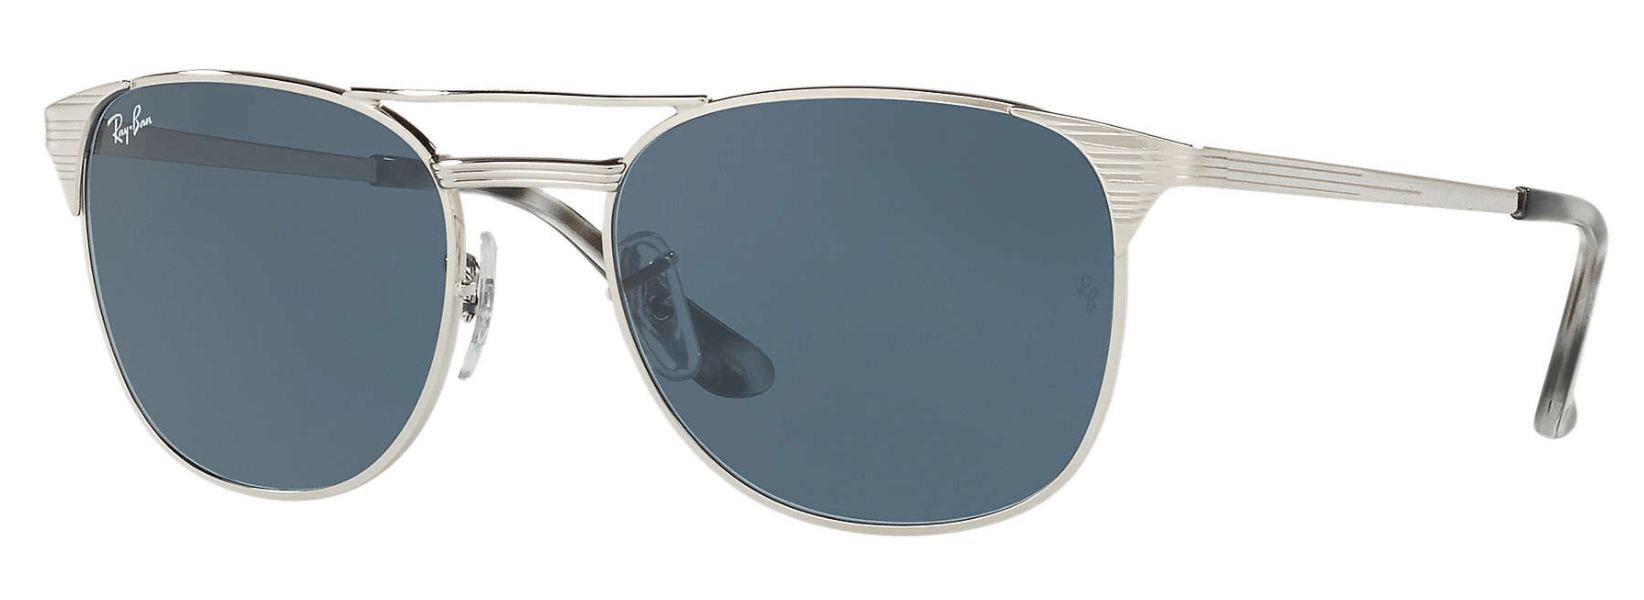 Ray-Ban Signet Silver and Blue